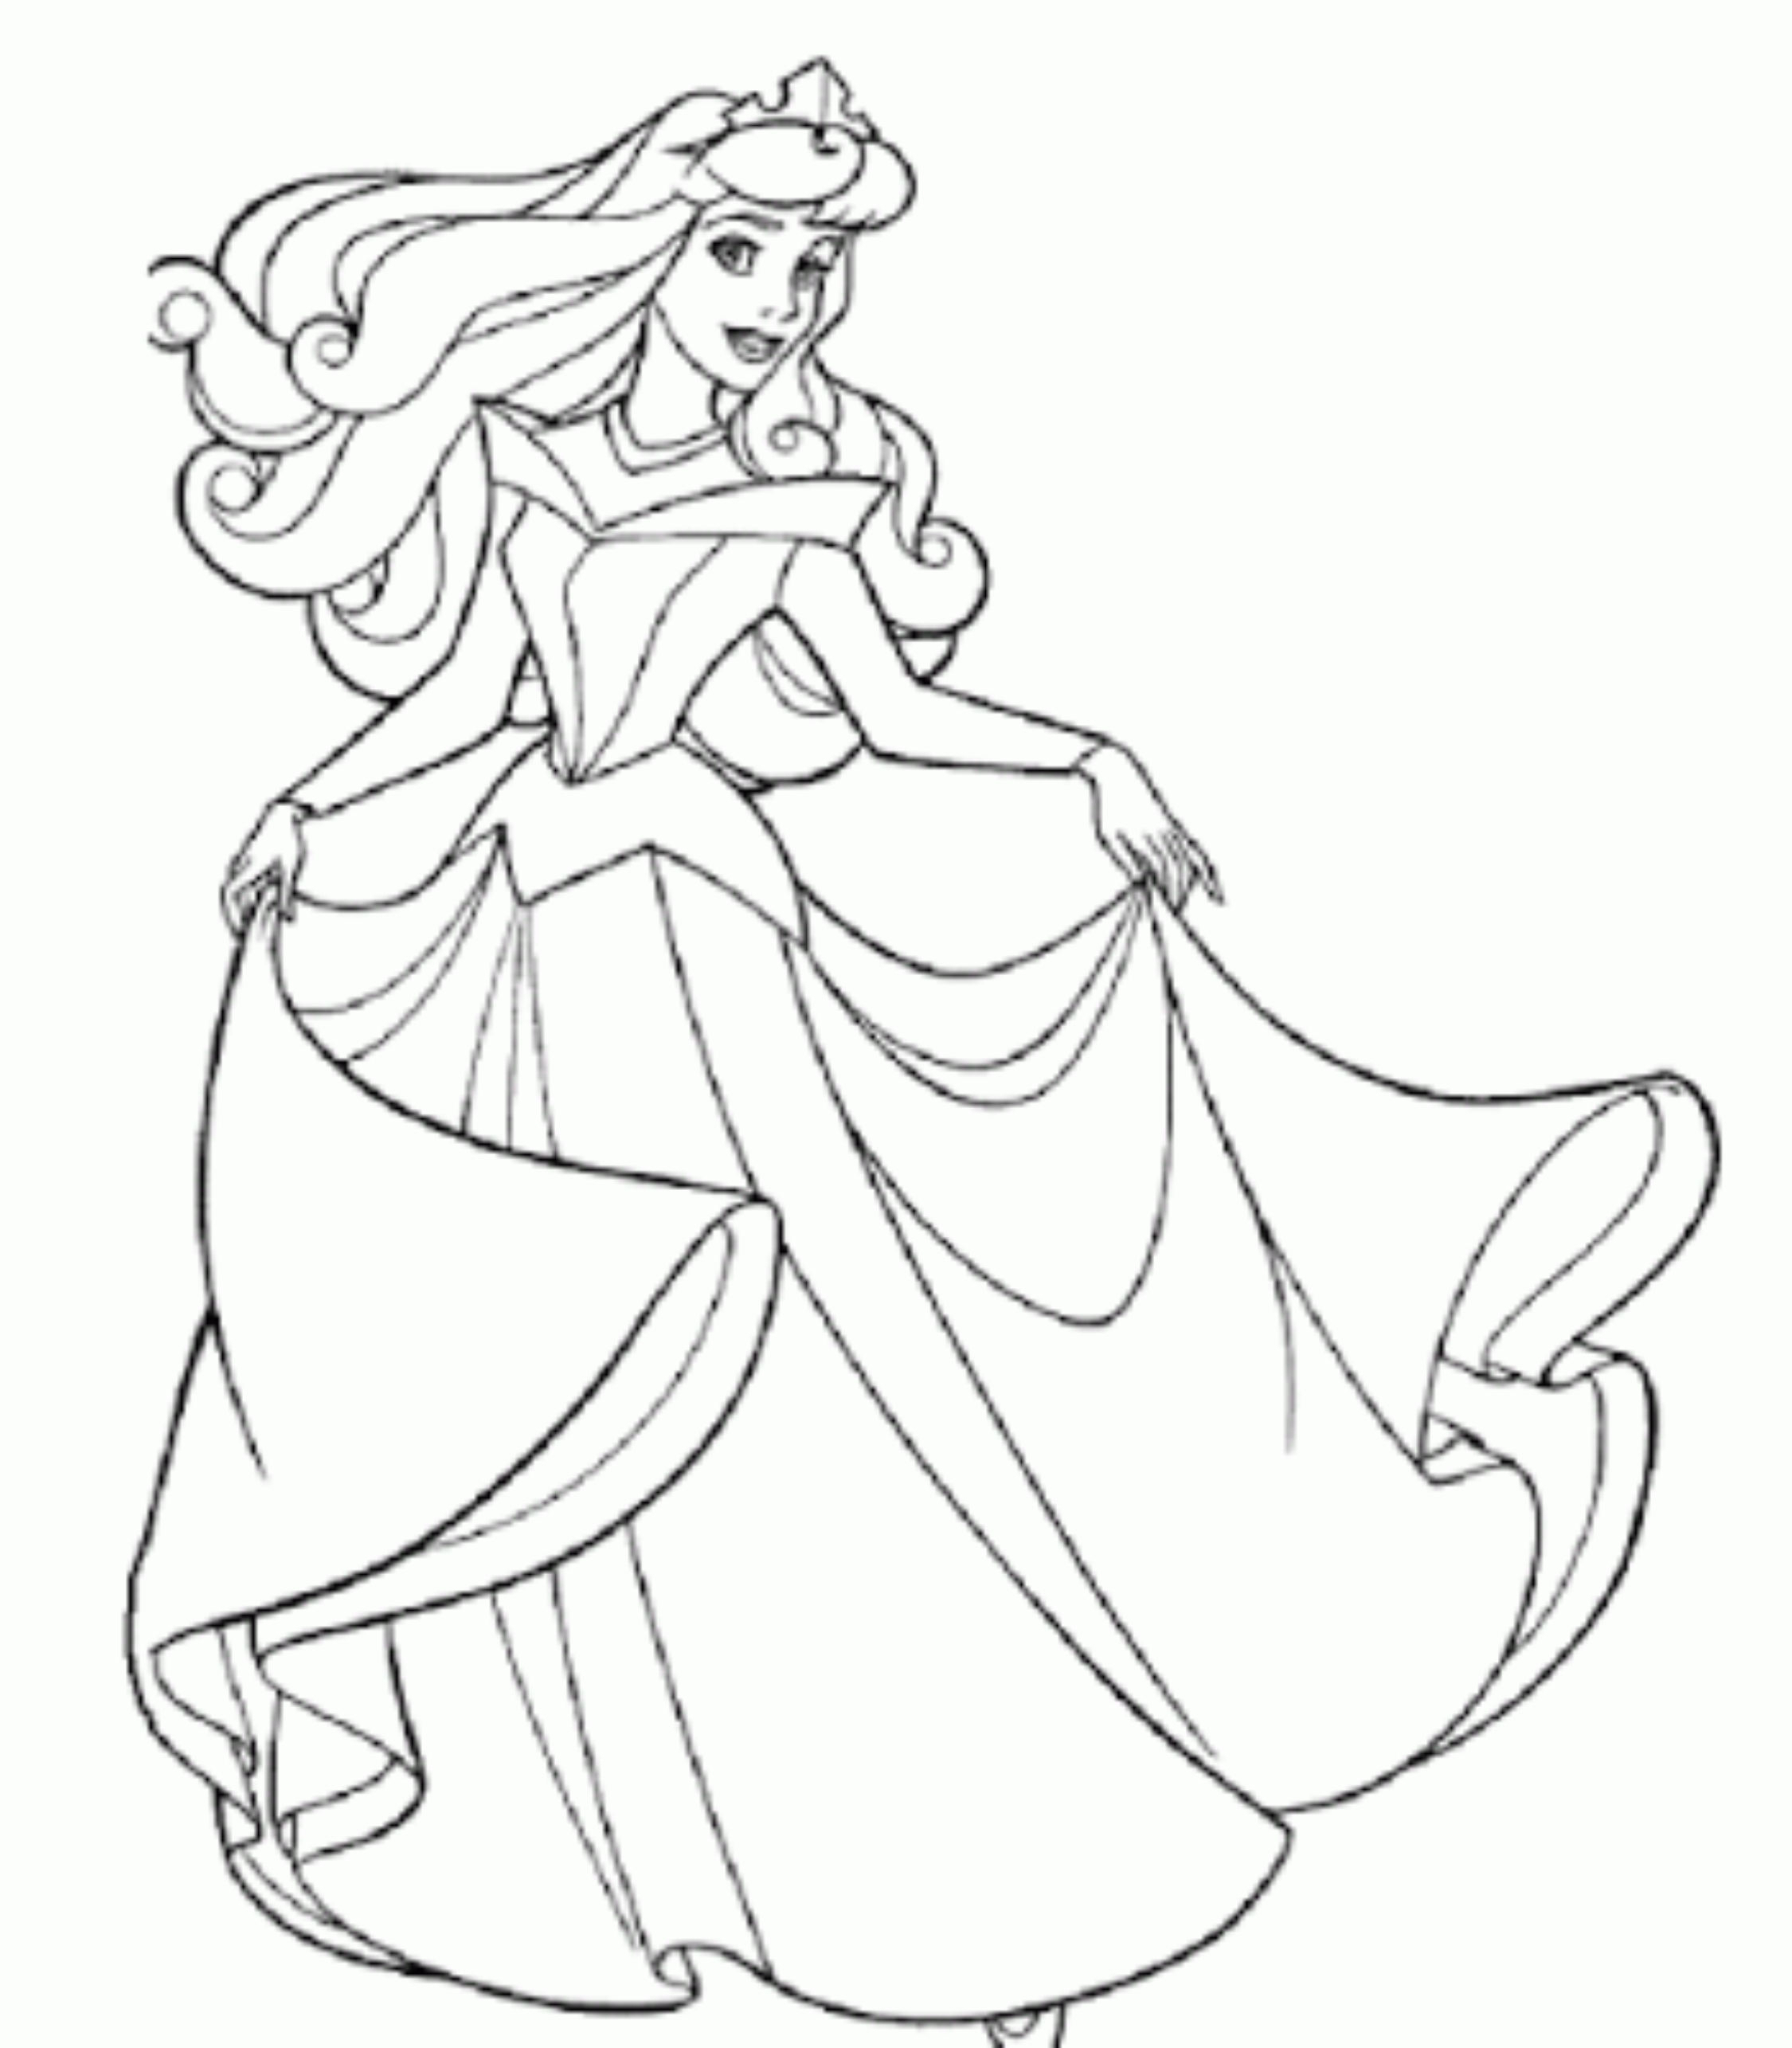 2250x2571 Barbie Princess Pencil Drawings Image Of Sketch Barbie Princess